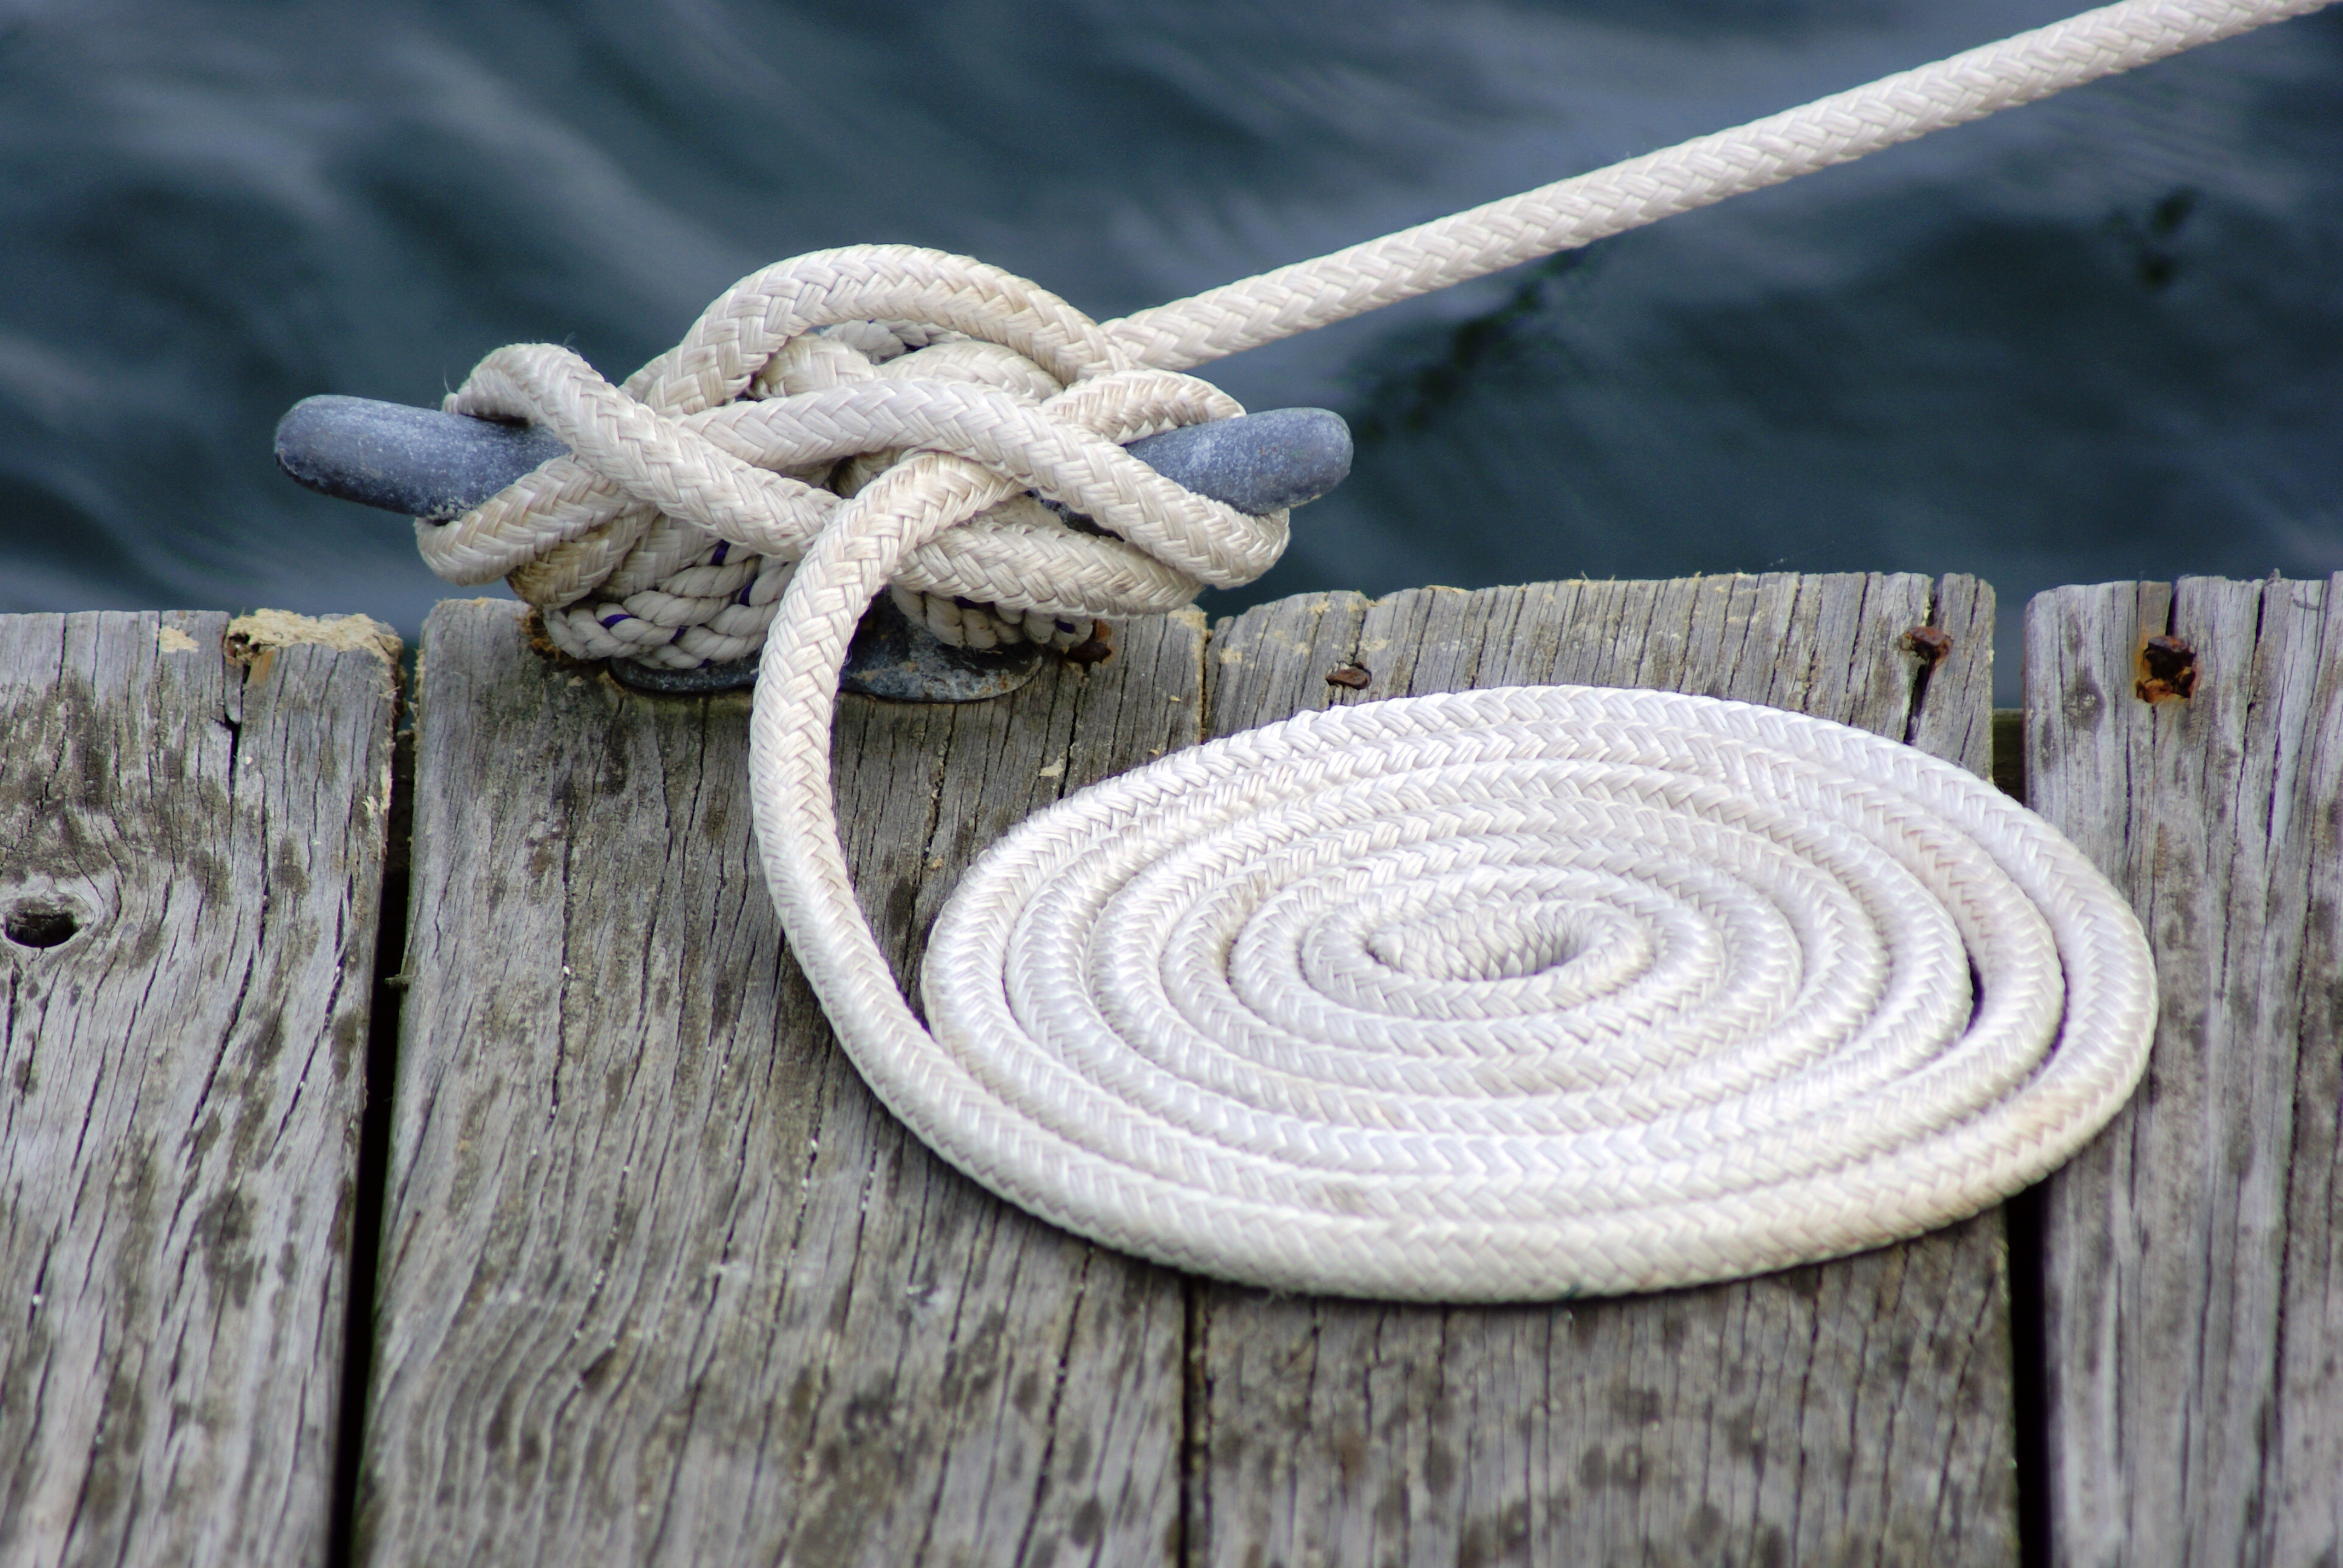 Dock Rope, Anchor, Spiral, Recreation, Rope, HQ Photo